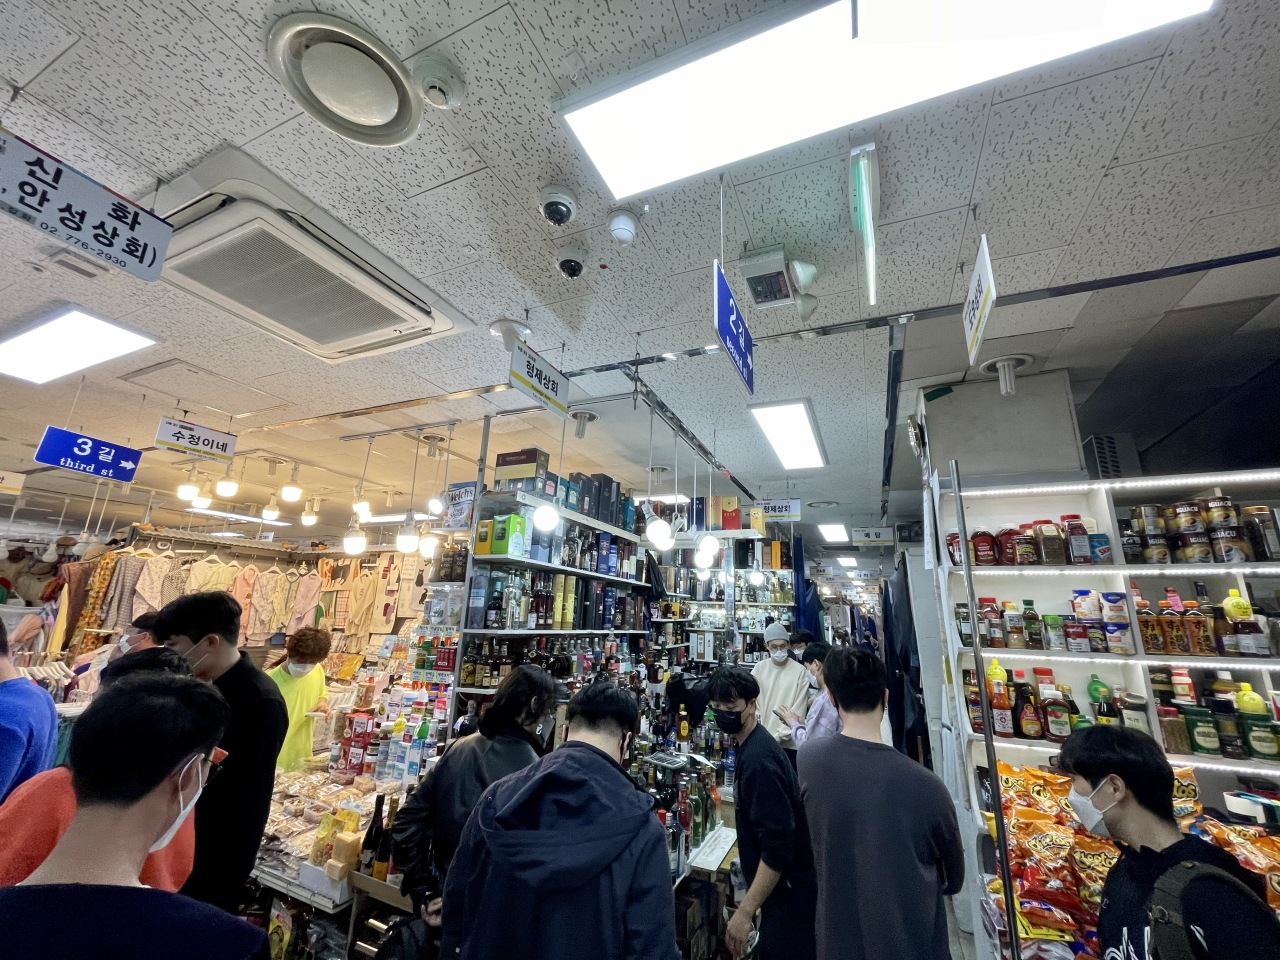 Namdaemun Market's liquor shopping mall is packed with customers on a Saturday afternoon. (Im Eun-byel / The Korea Herald)